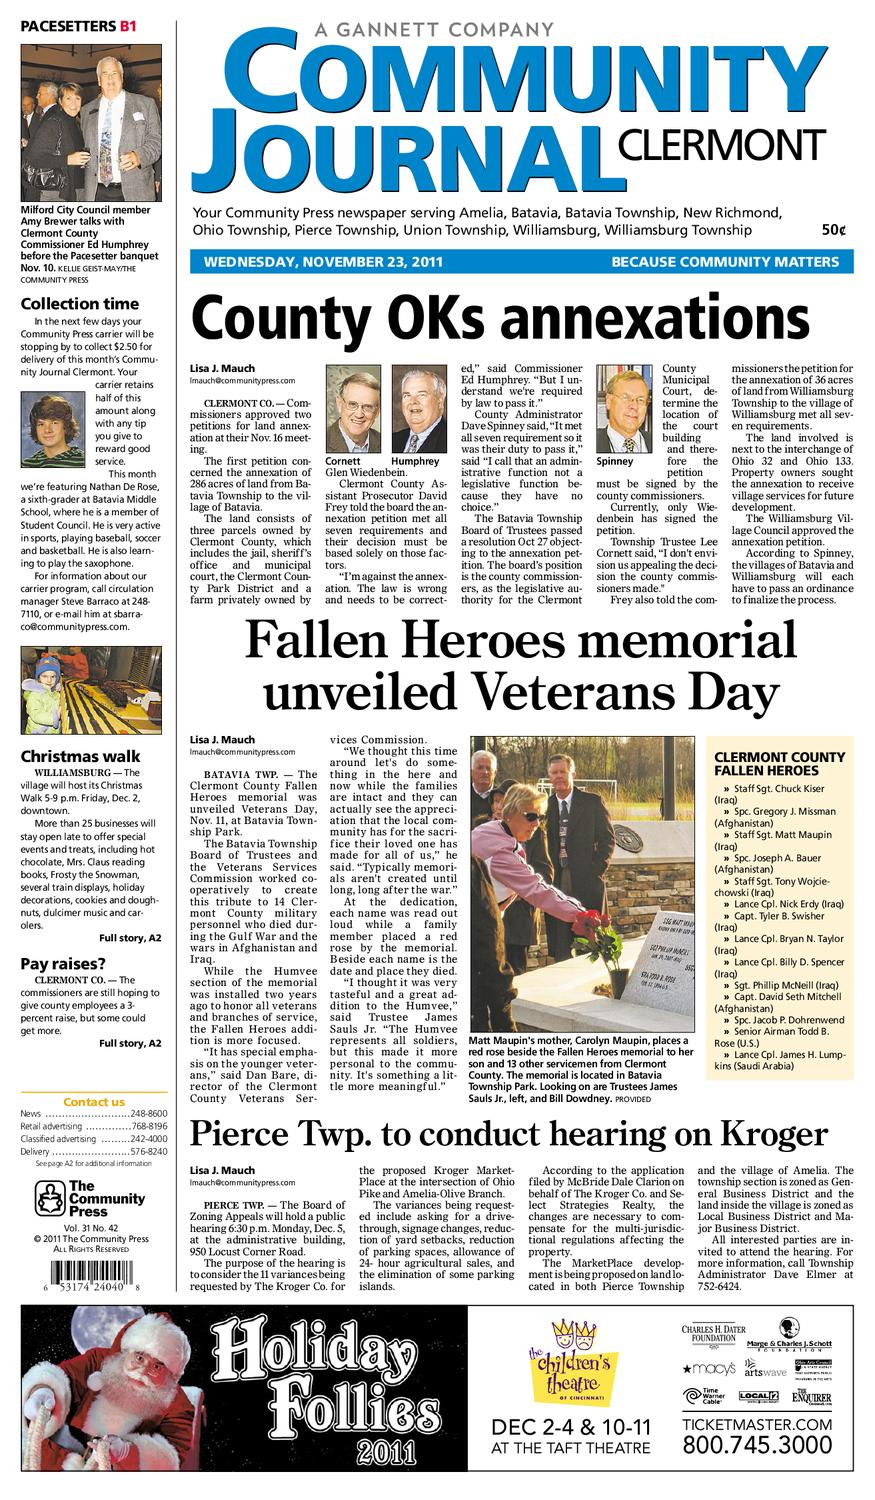 community-journal-clermont-112311 by Enquirer Media - issuu